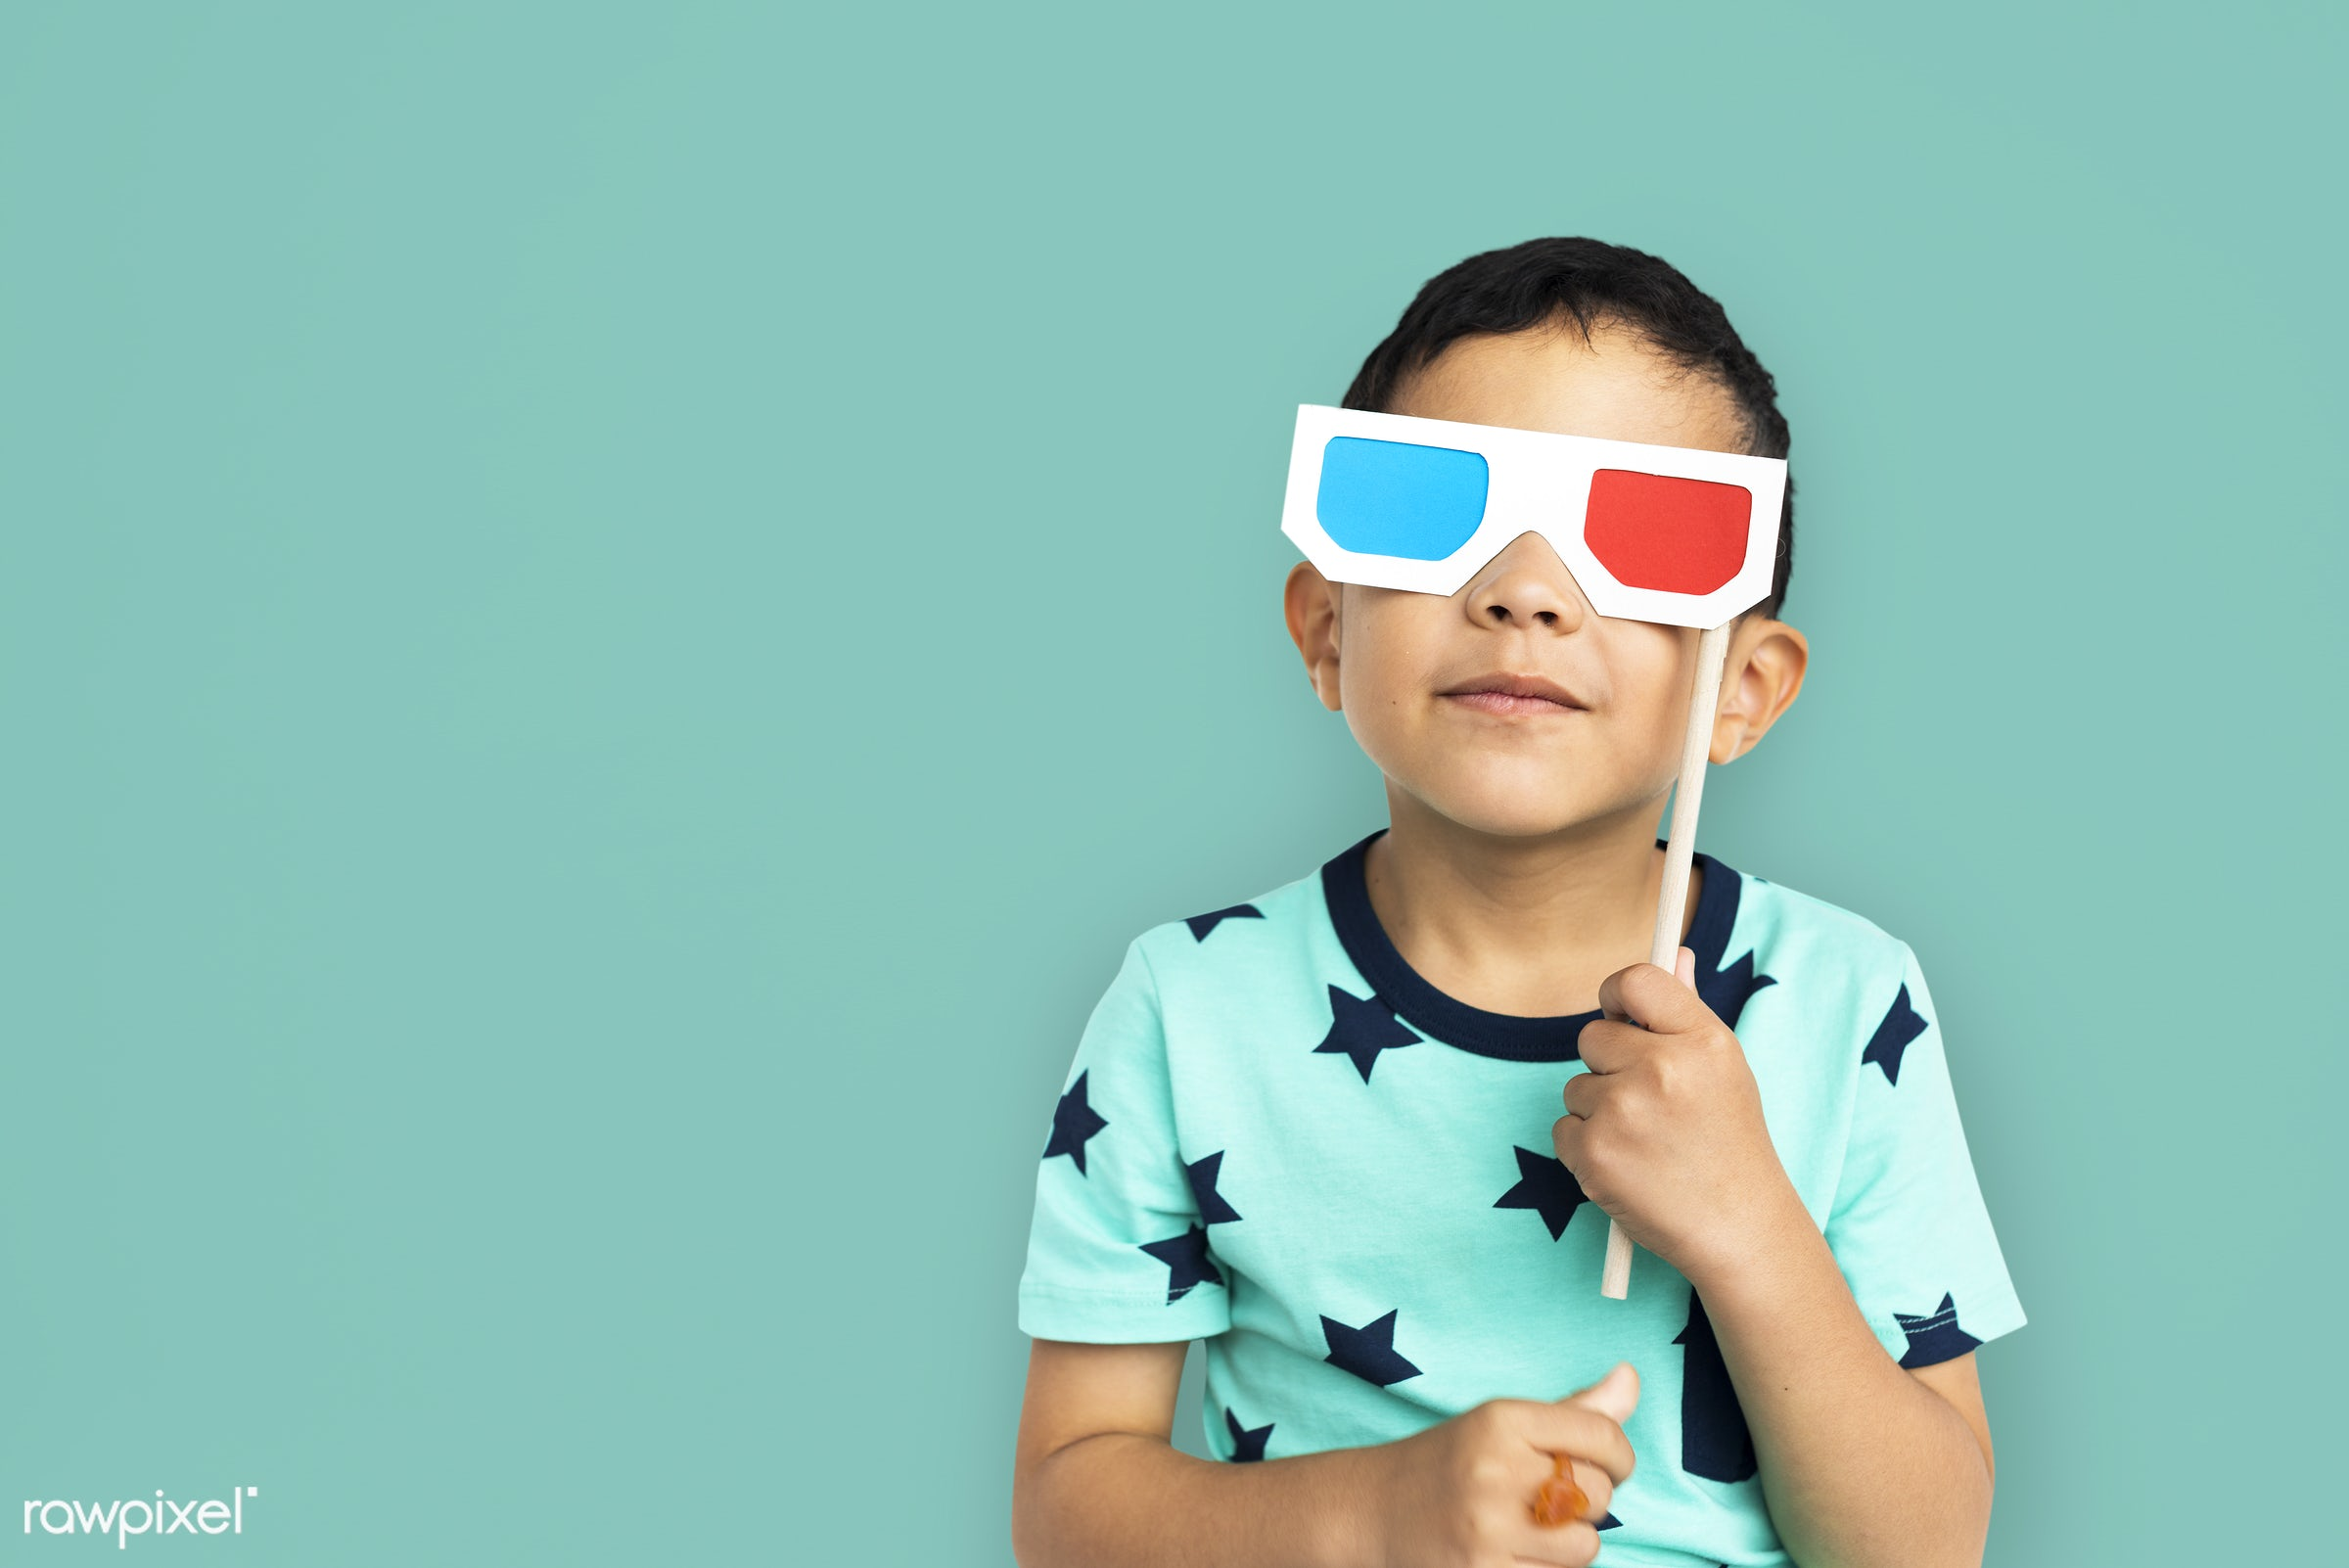 expression, studio, person, glasses, joy, little, 3d glasses, cute, people, kid, child, joyous, happy, cheerful, isolated,...